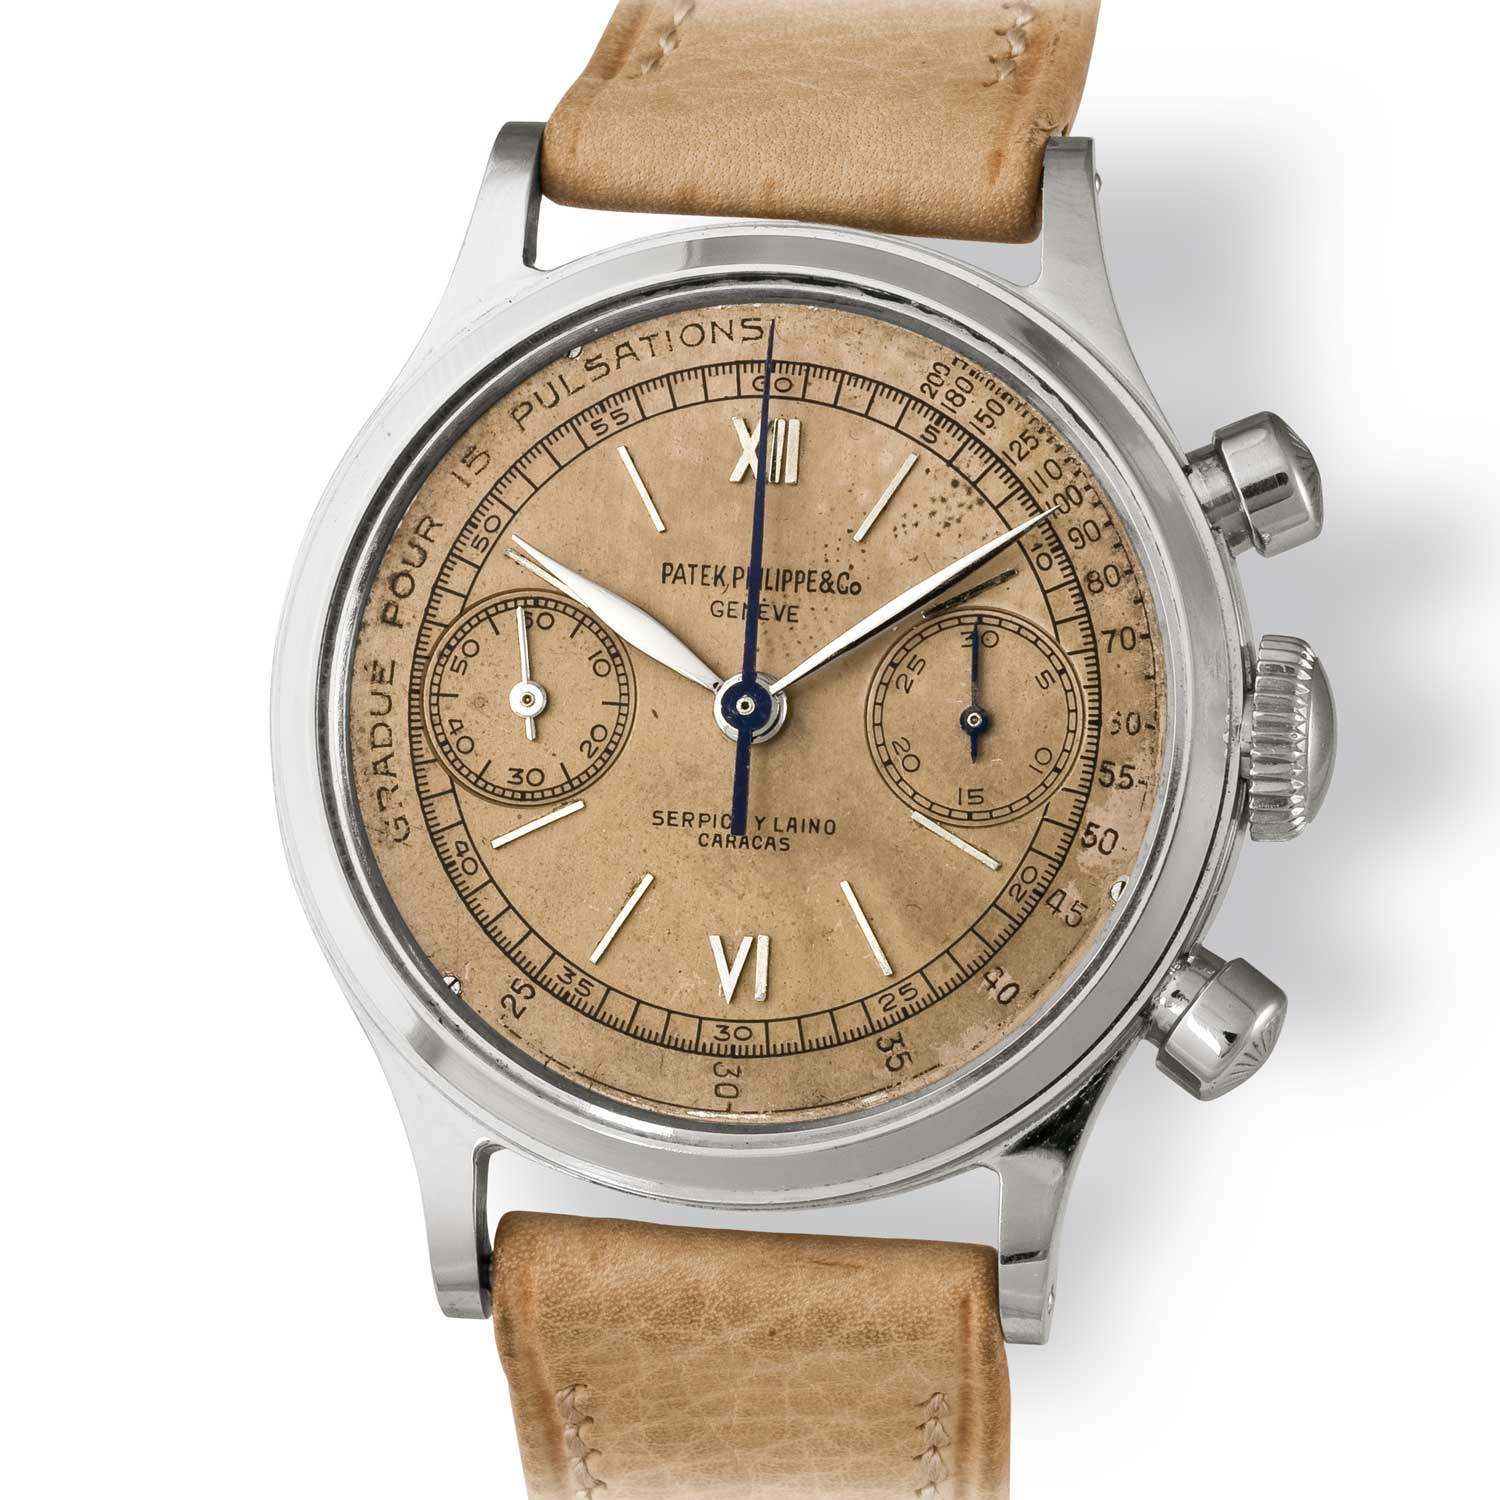 Patek Philippe ref. 1463 steel chronograph with Roman numerals and pulsation scale on a salmon dial (Image: John Goldberger)